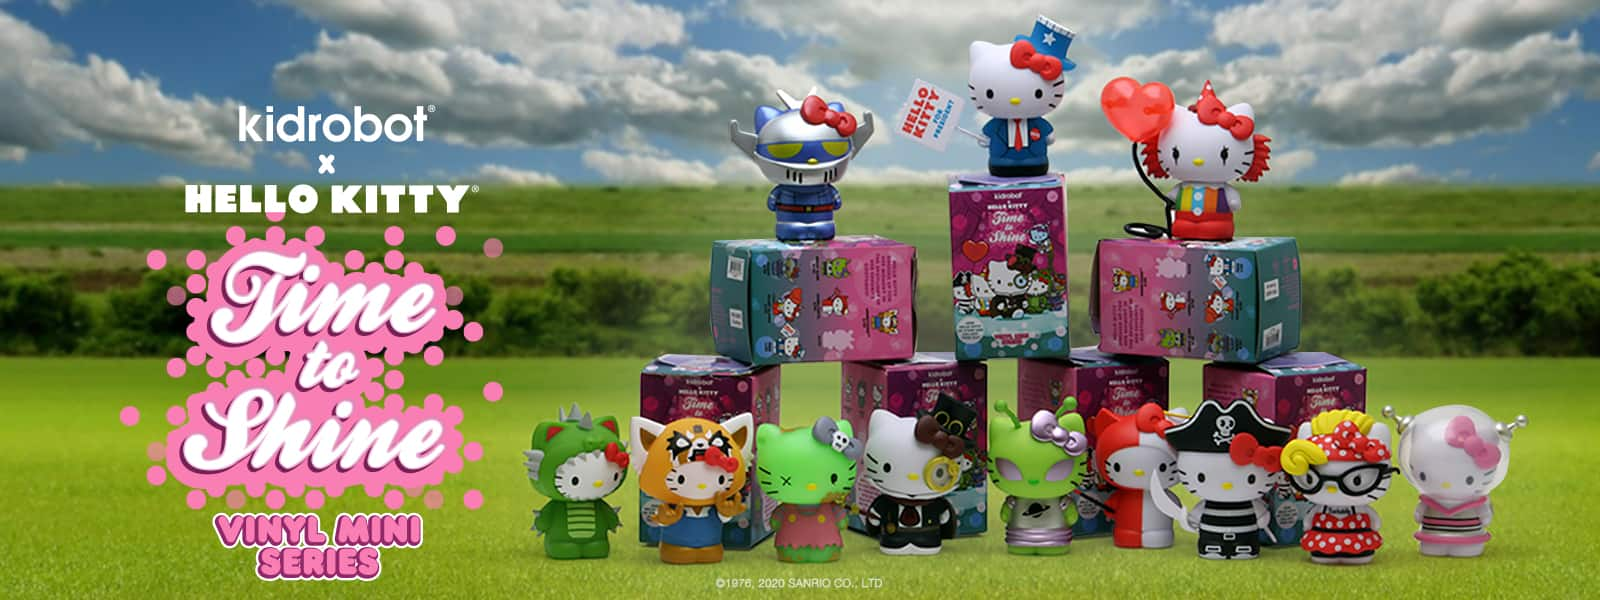 Kidrobot x Hello Kitty Time to Shine Toy Figures - Sanrio - Kidrobot.com